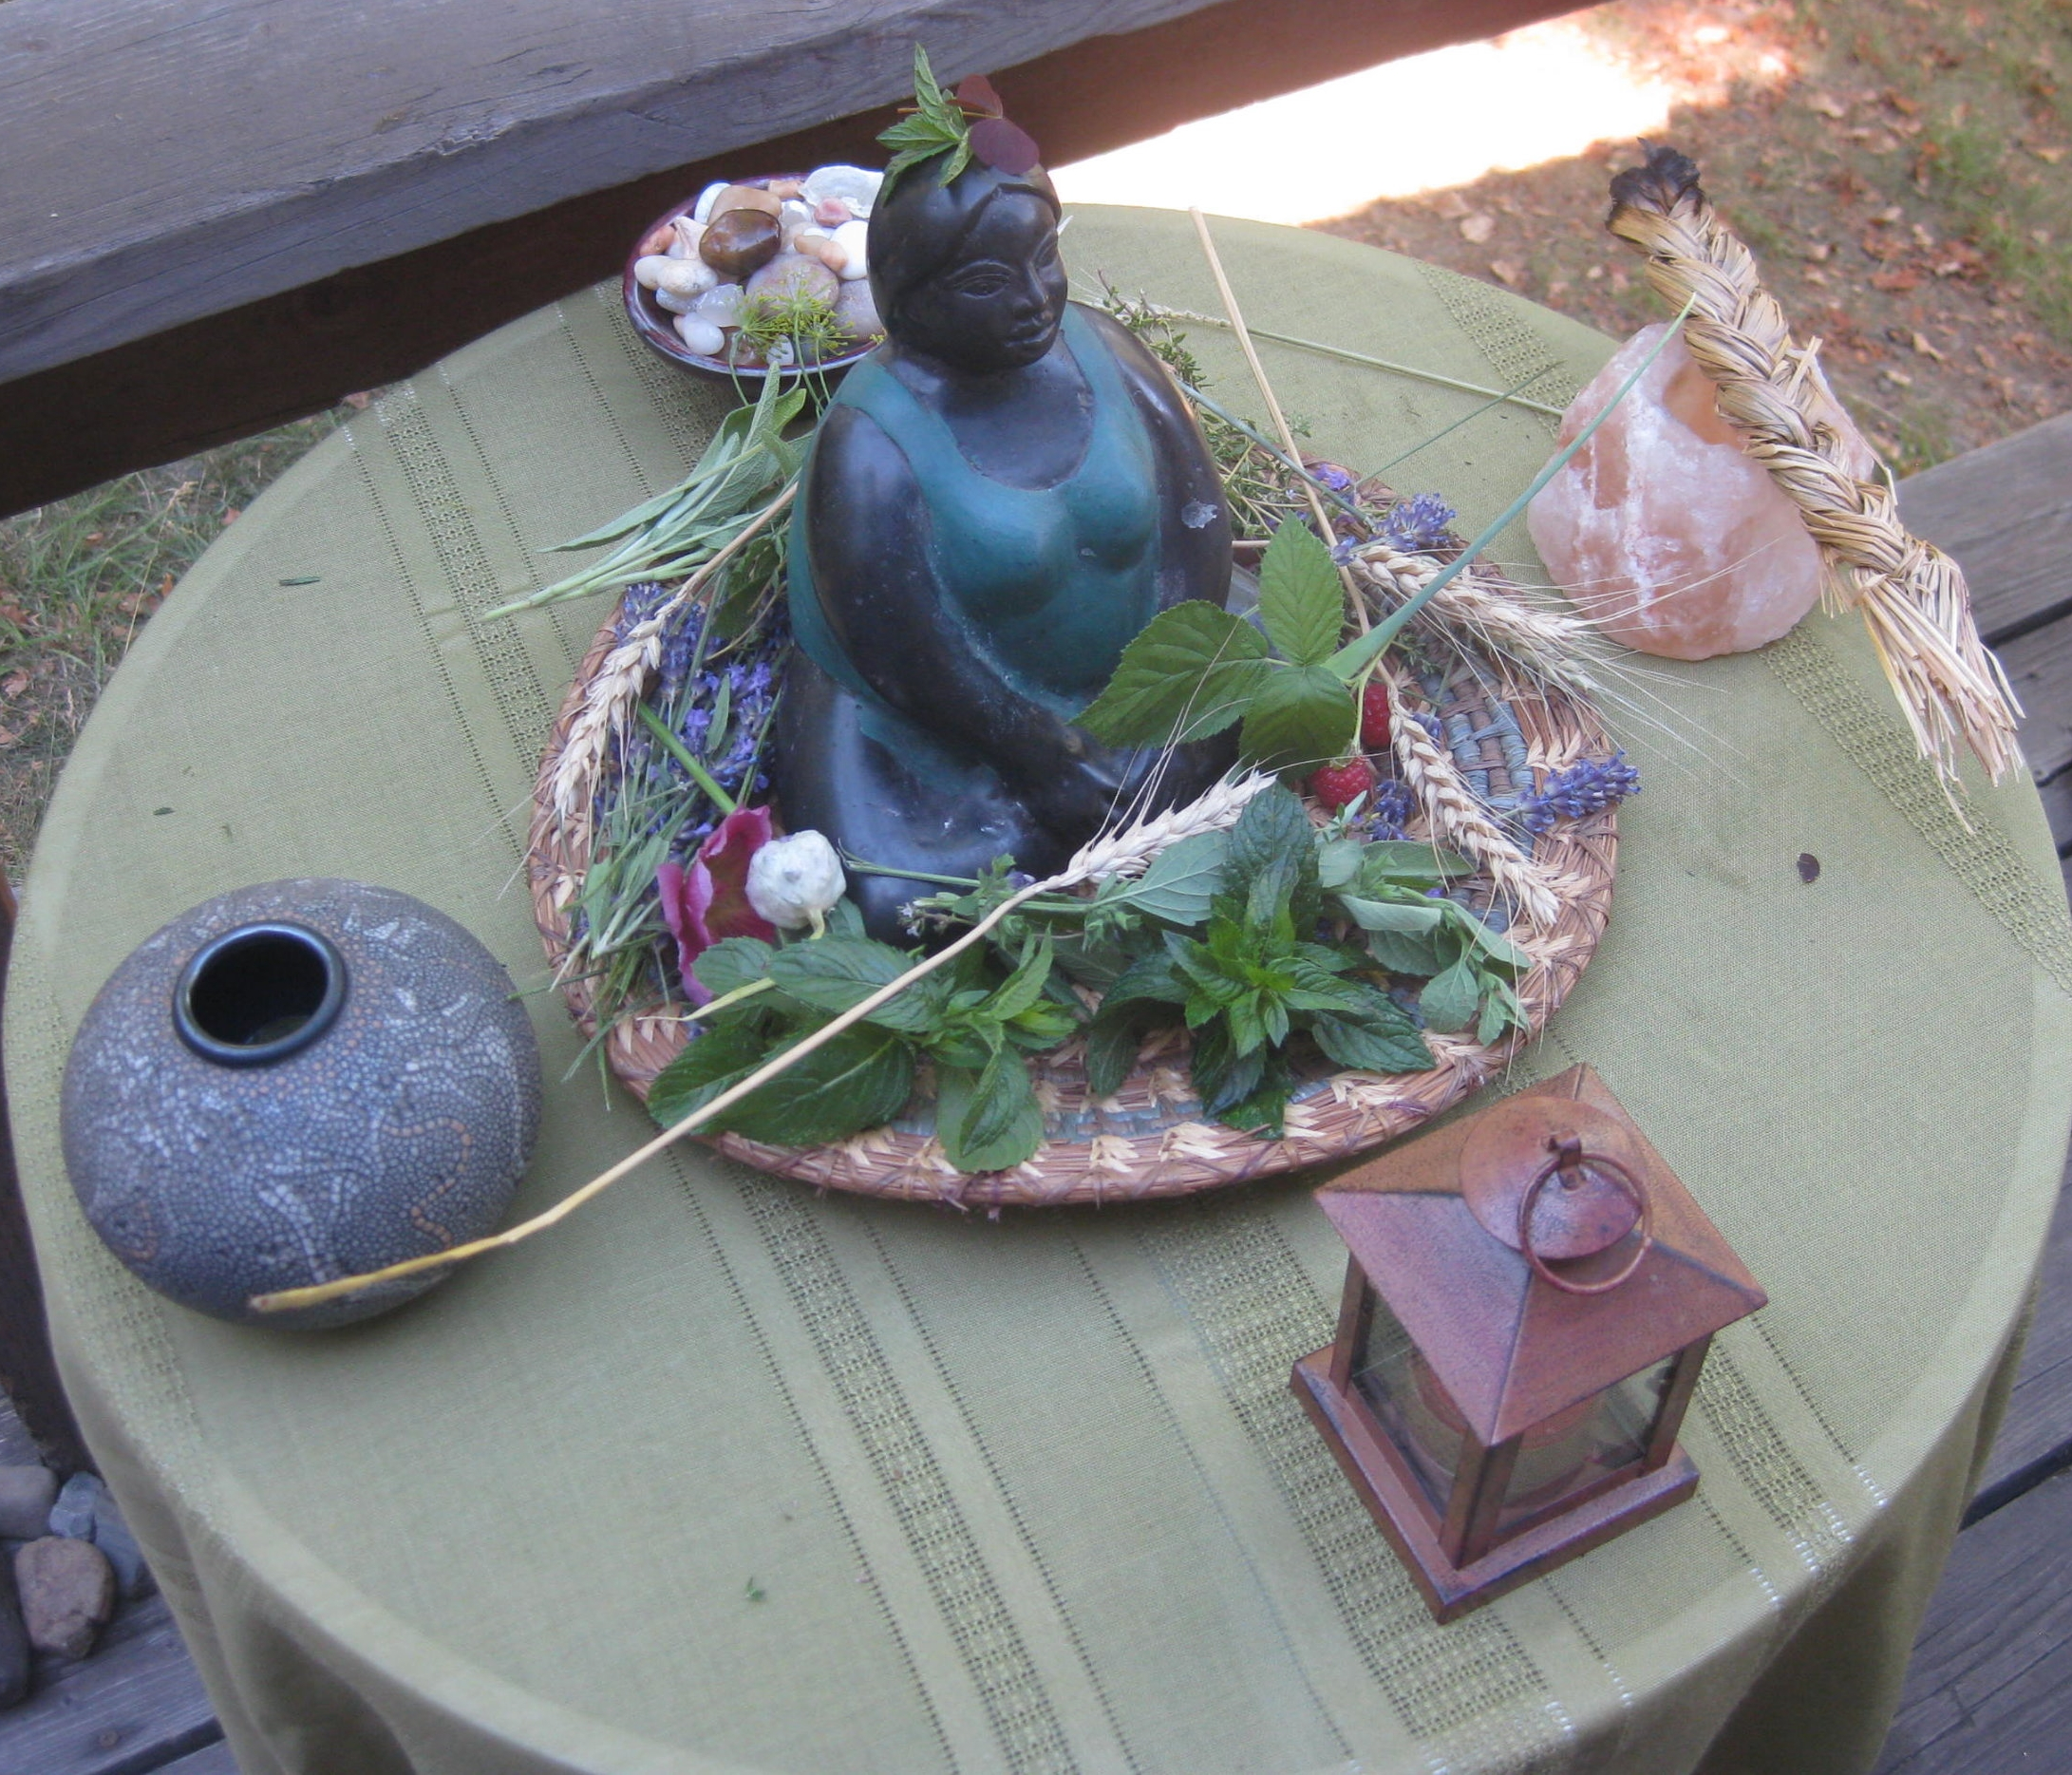 Image by Arie Farnam - A simple altar is set up on an outdoor table. In the center there is a blue-black goddess stature surrounded by fresh leaves, flowers and stalks of wheat. In front of her there is a small lantern for a candle. Behind her there is a small bowl filled with stones. On the left there is a gourd-shaped water container and on the right there is a braided sweet grass smudge stick on a candle holder.